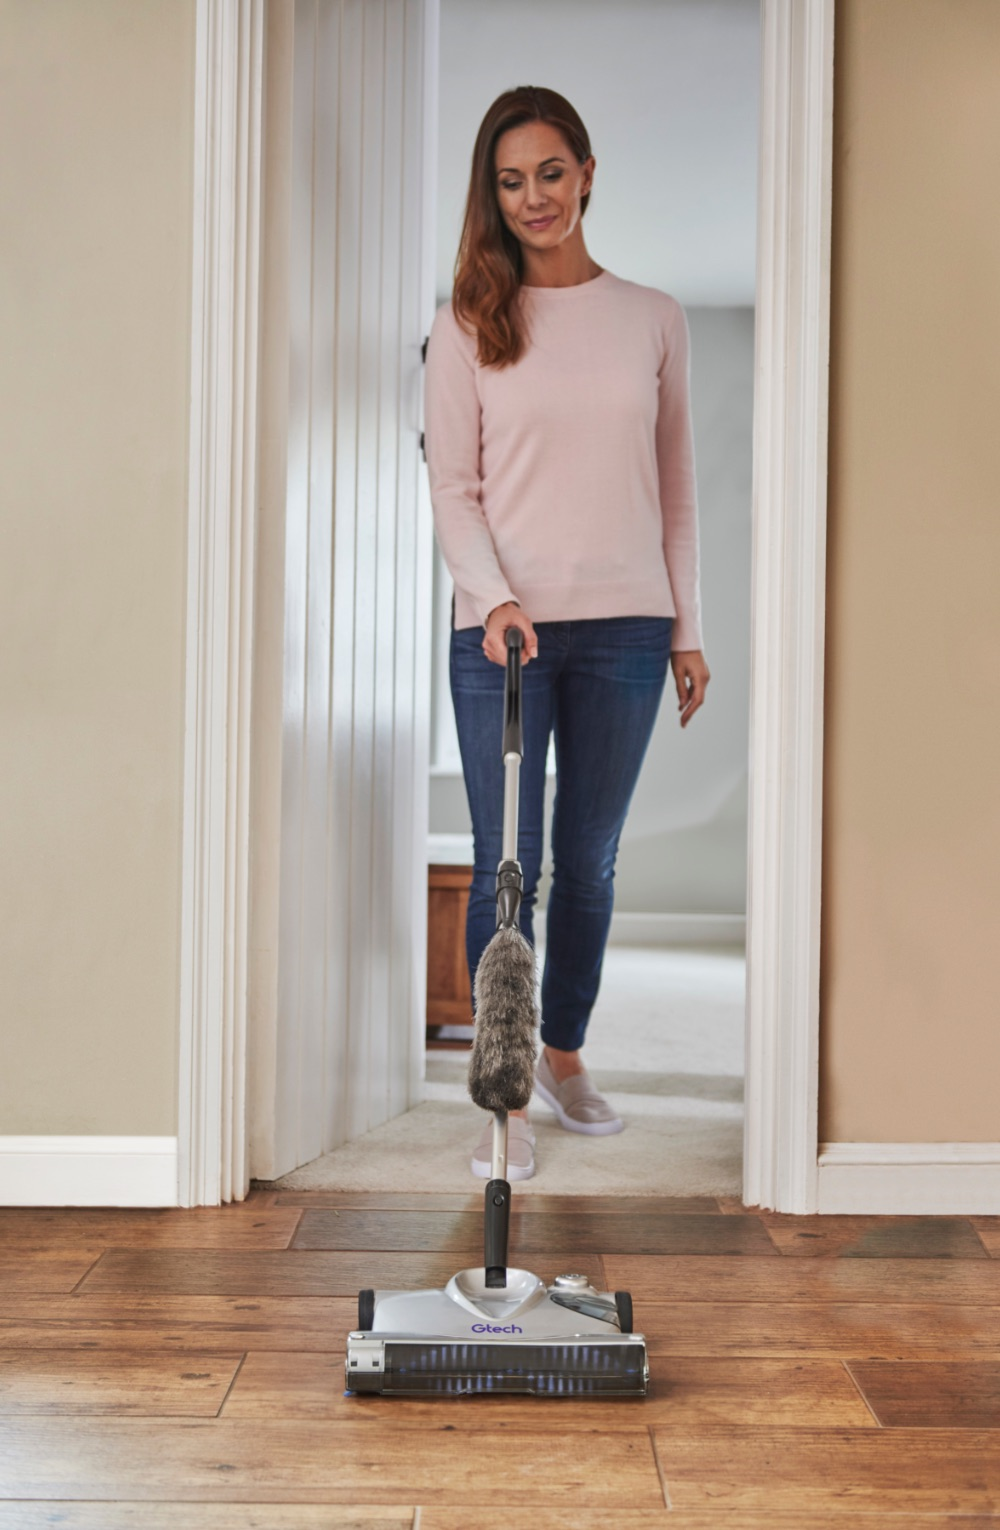 SW02 advanced carpet sweeper duster attachment